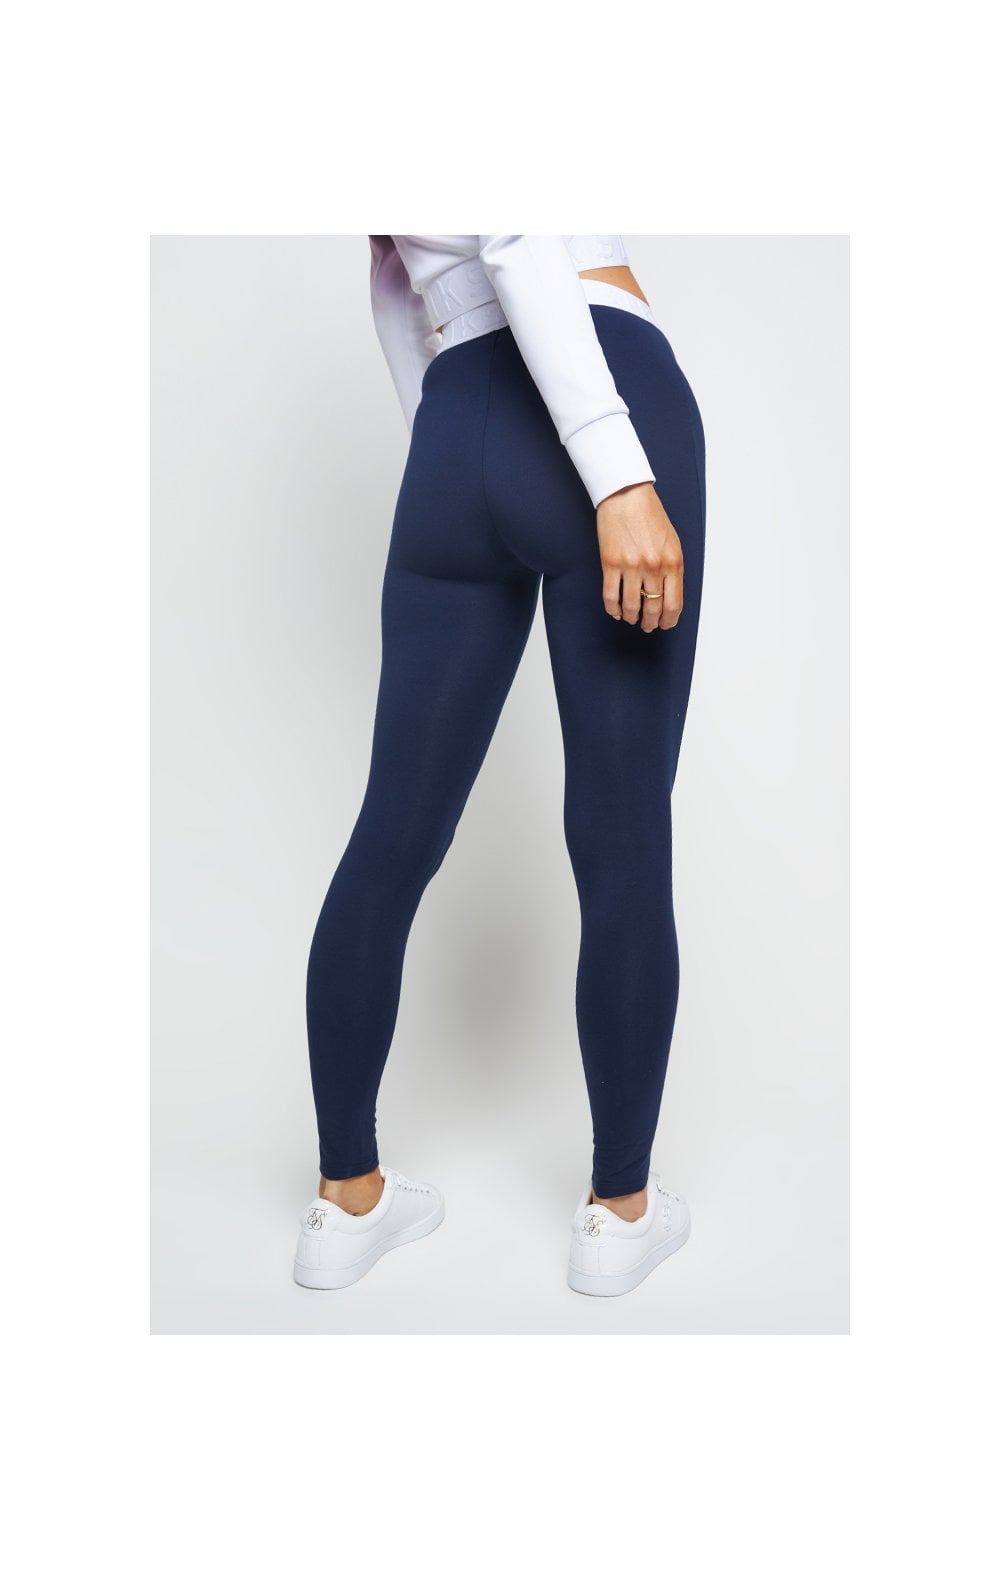 SikSilk Tape Waist Leggings - Navy (3)